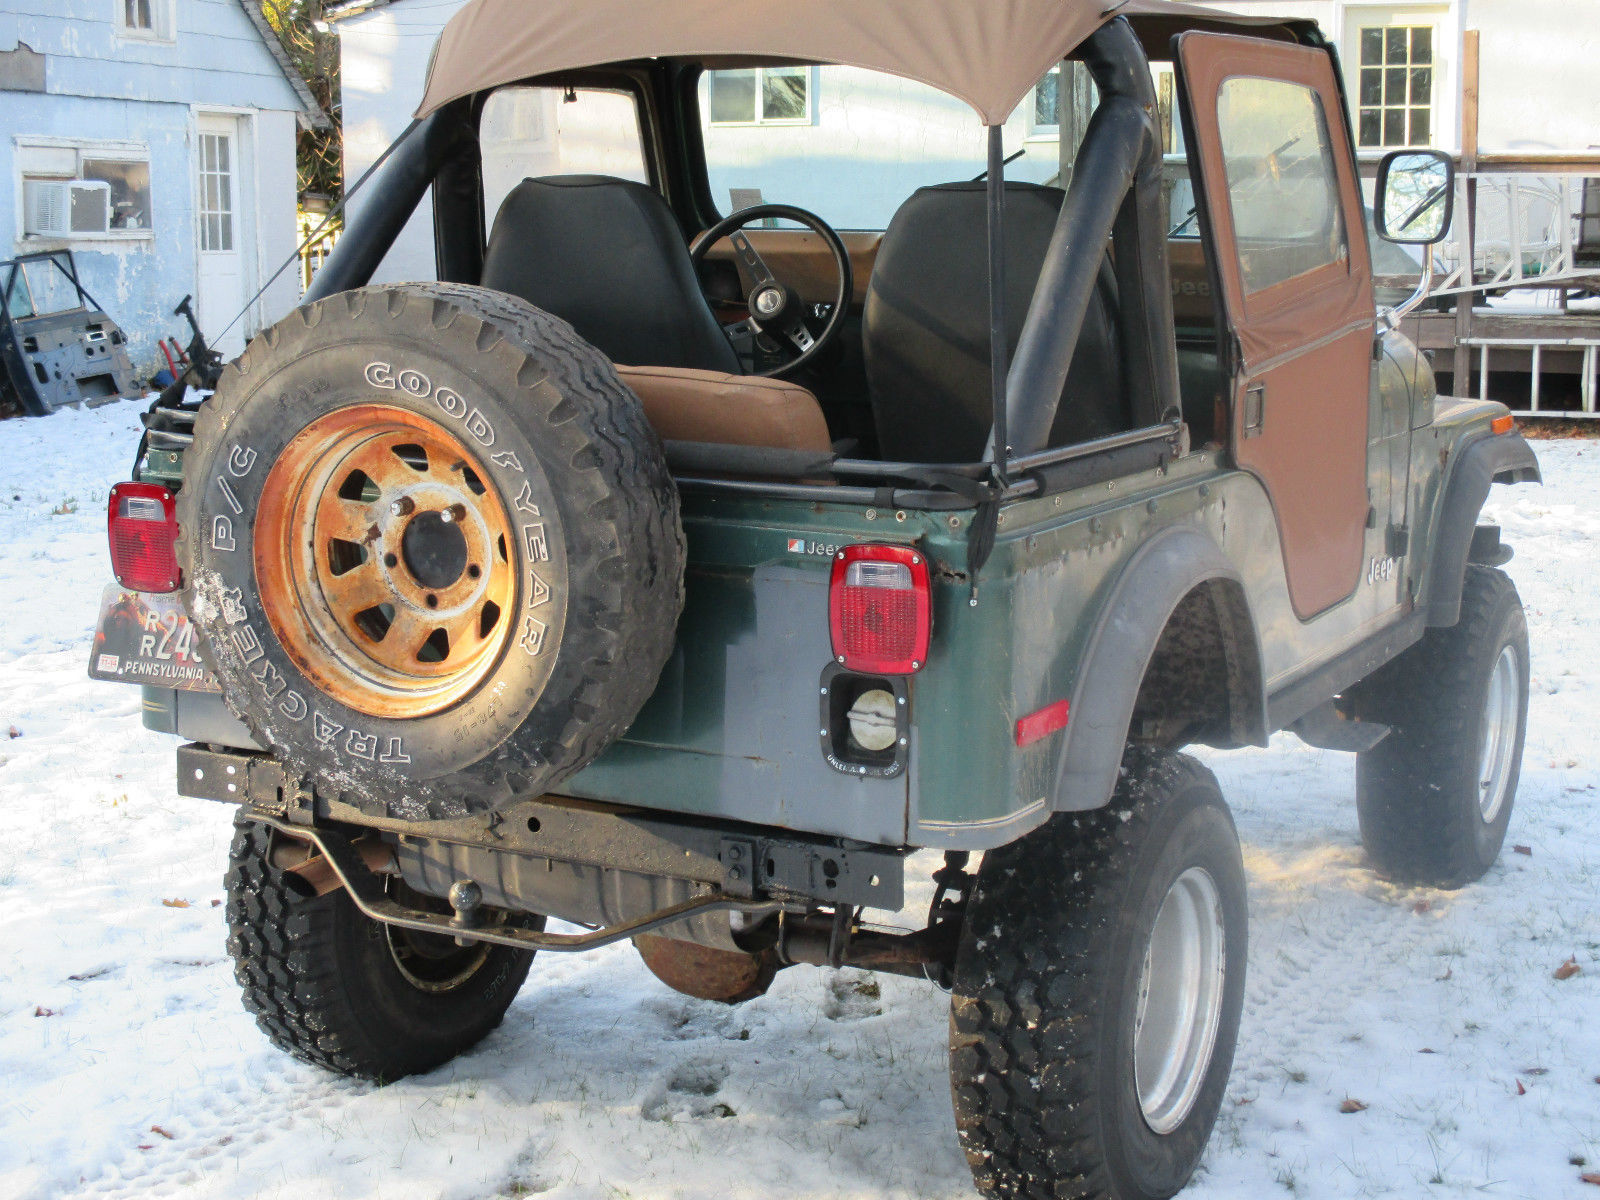 1979 AMC JEEP GOLDEN EAGLE CJ5. CJ-5 JEEP CJ. LIFTED WITH ...